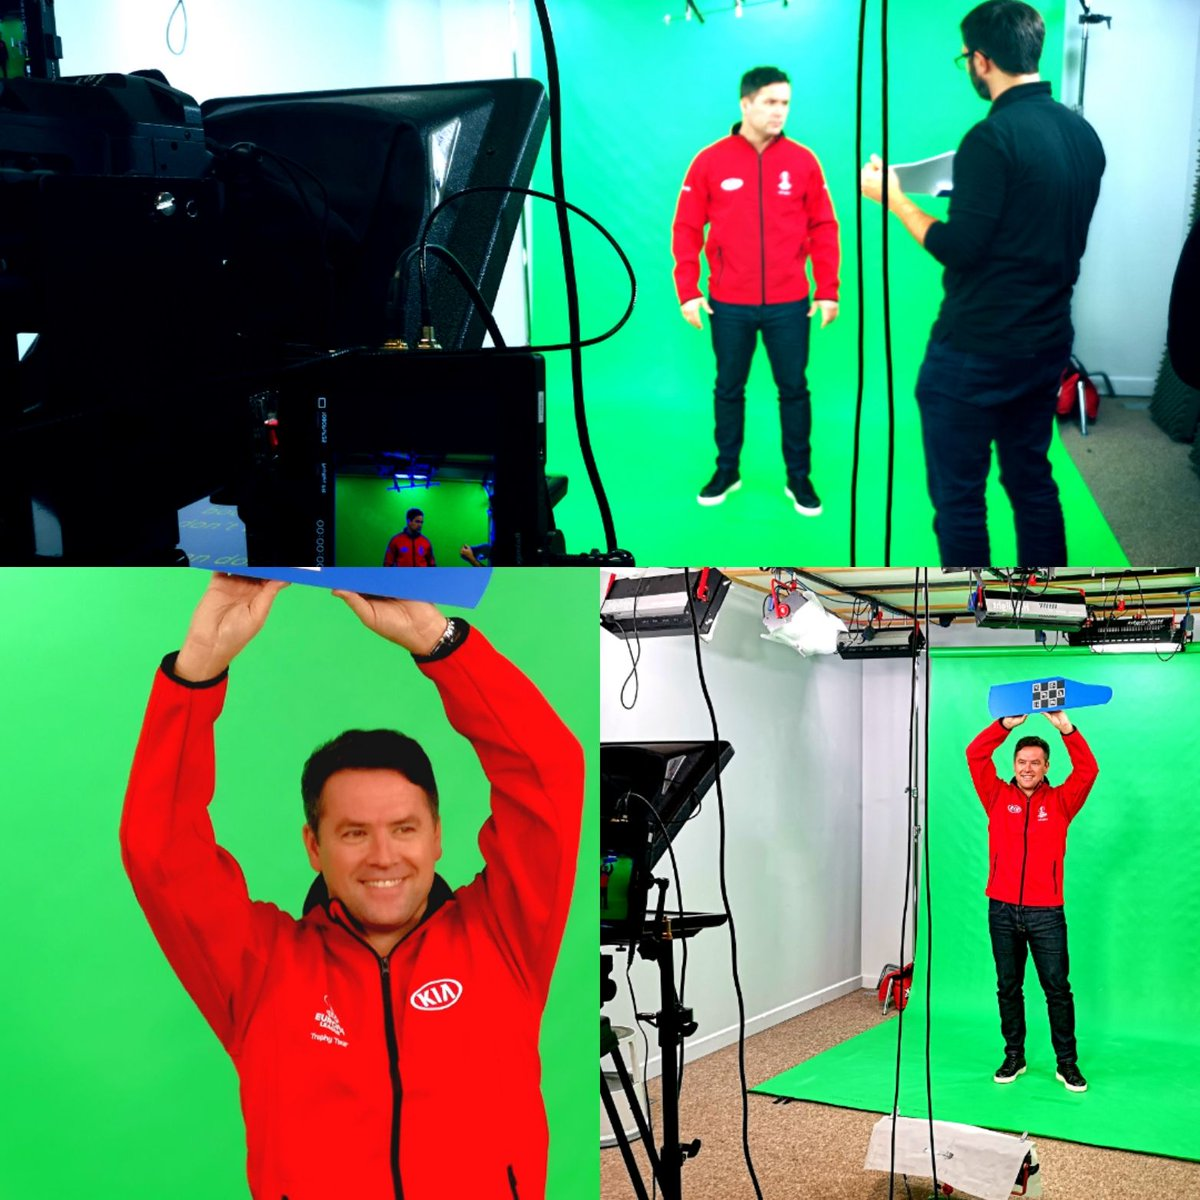 Some BTS shots of Michael Owen in the Soundproof Studio here at Galleon Studios. Catch The UEFA Europa League Trophy Tour at venues throughout Europe including Manchester in May. #PassThemOn campaign #ar #augmentedrealityfilming #bts #michaelowen #kiamotors